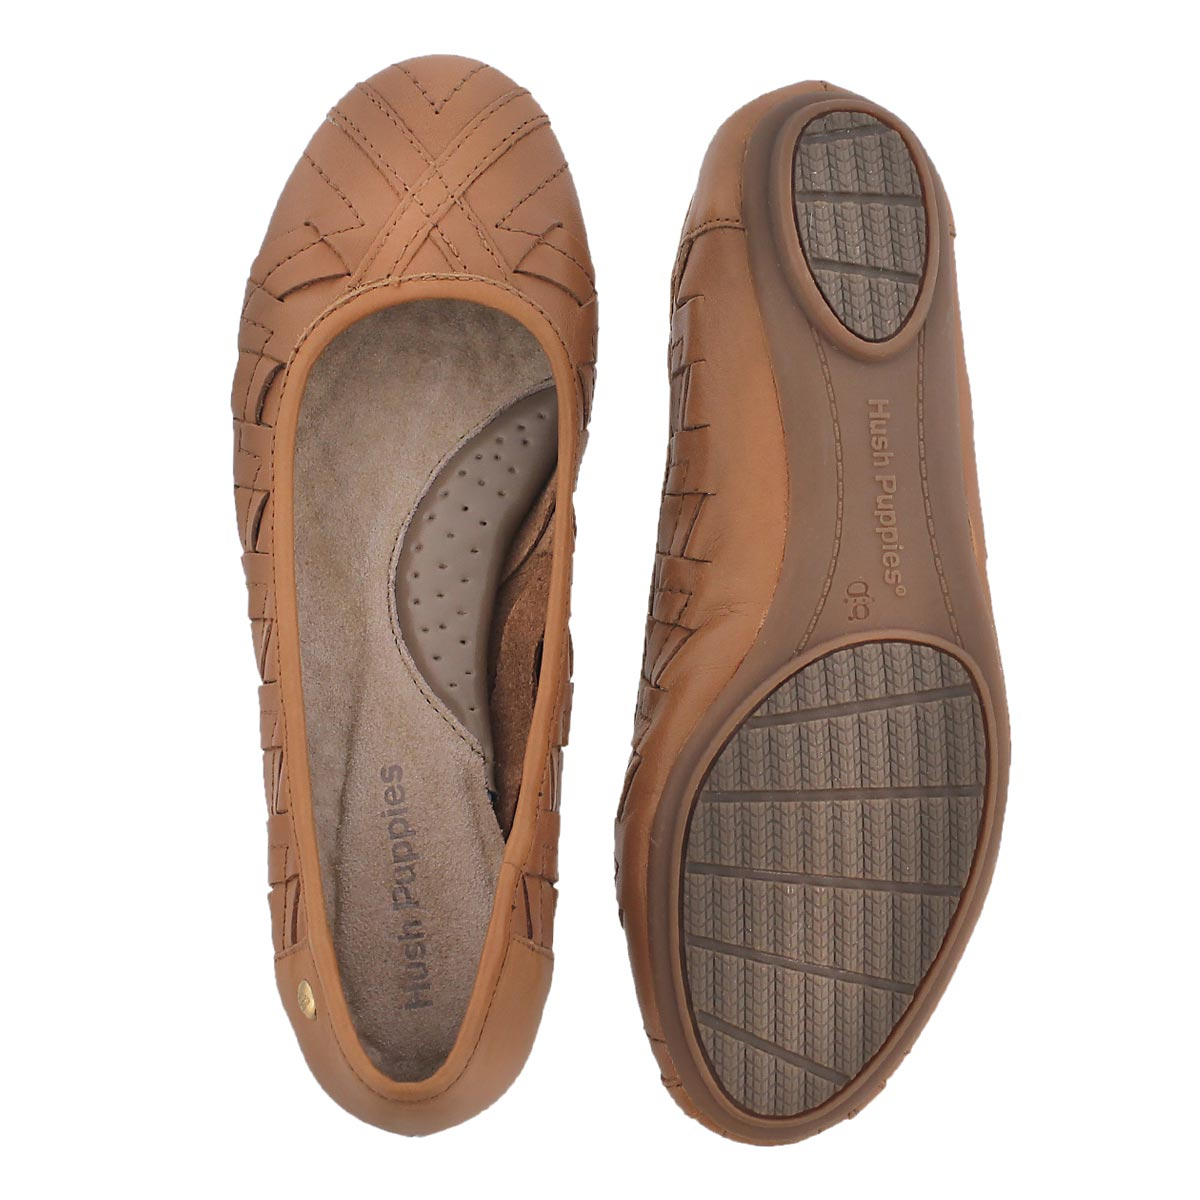 Lds Emmaline Chaste tan weaved flat